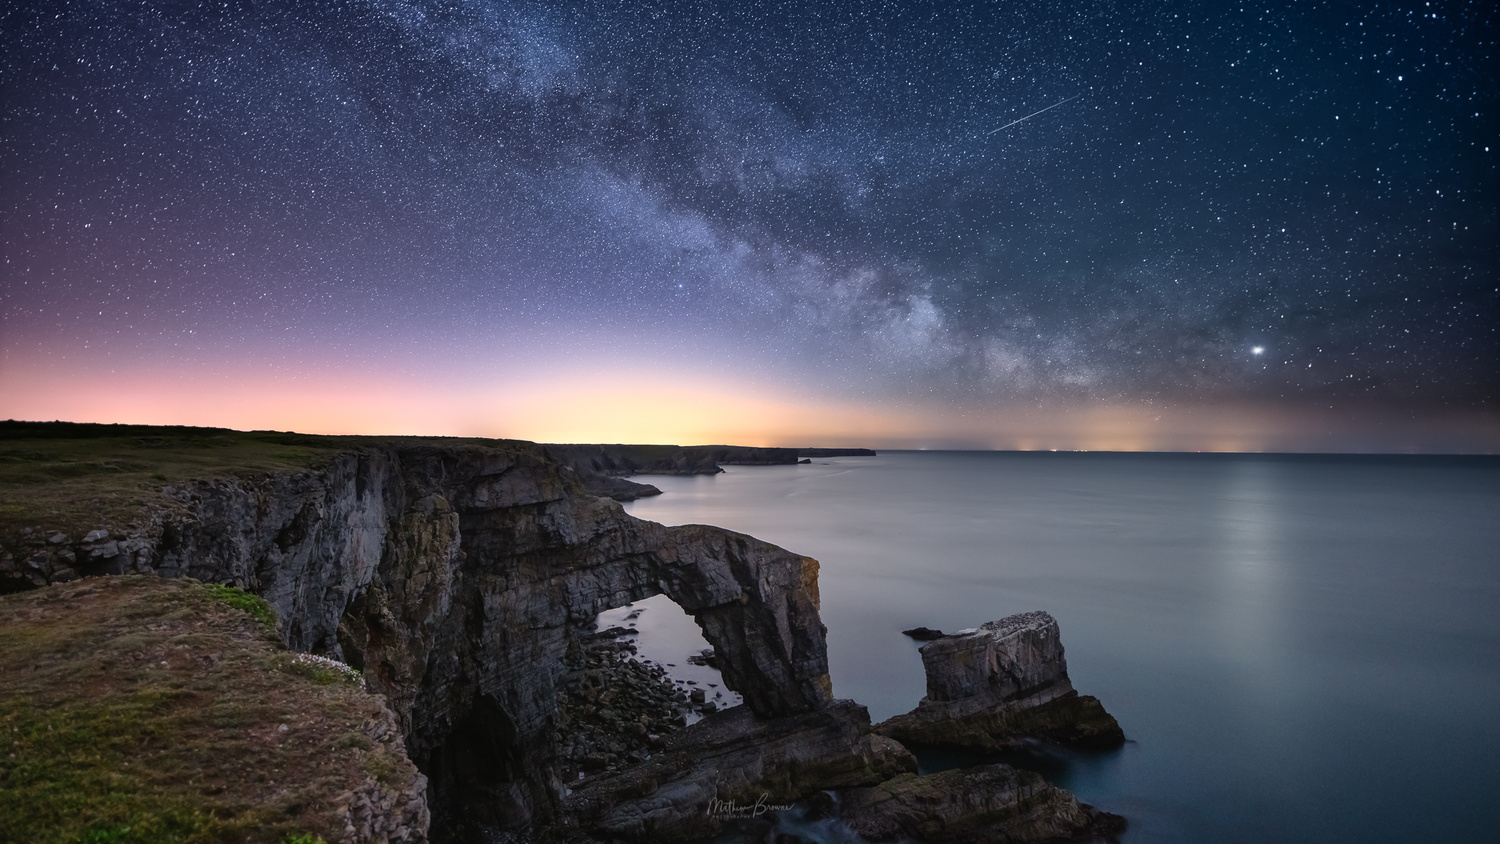 Milky Way Above Green Bridge by Mathew Browne